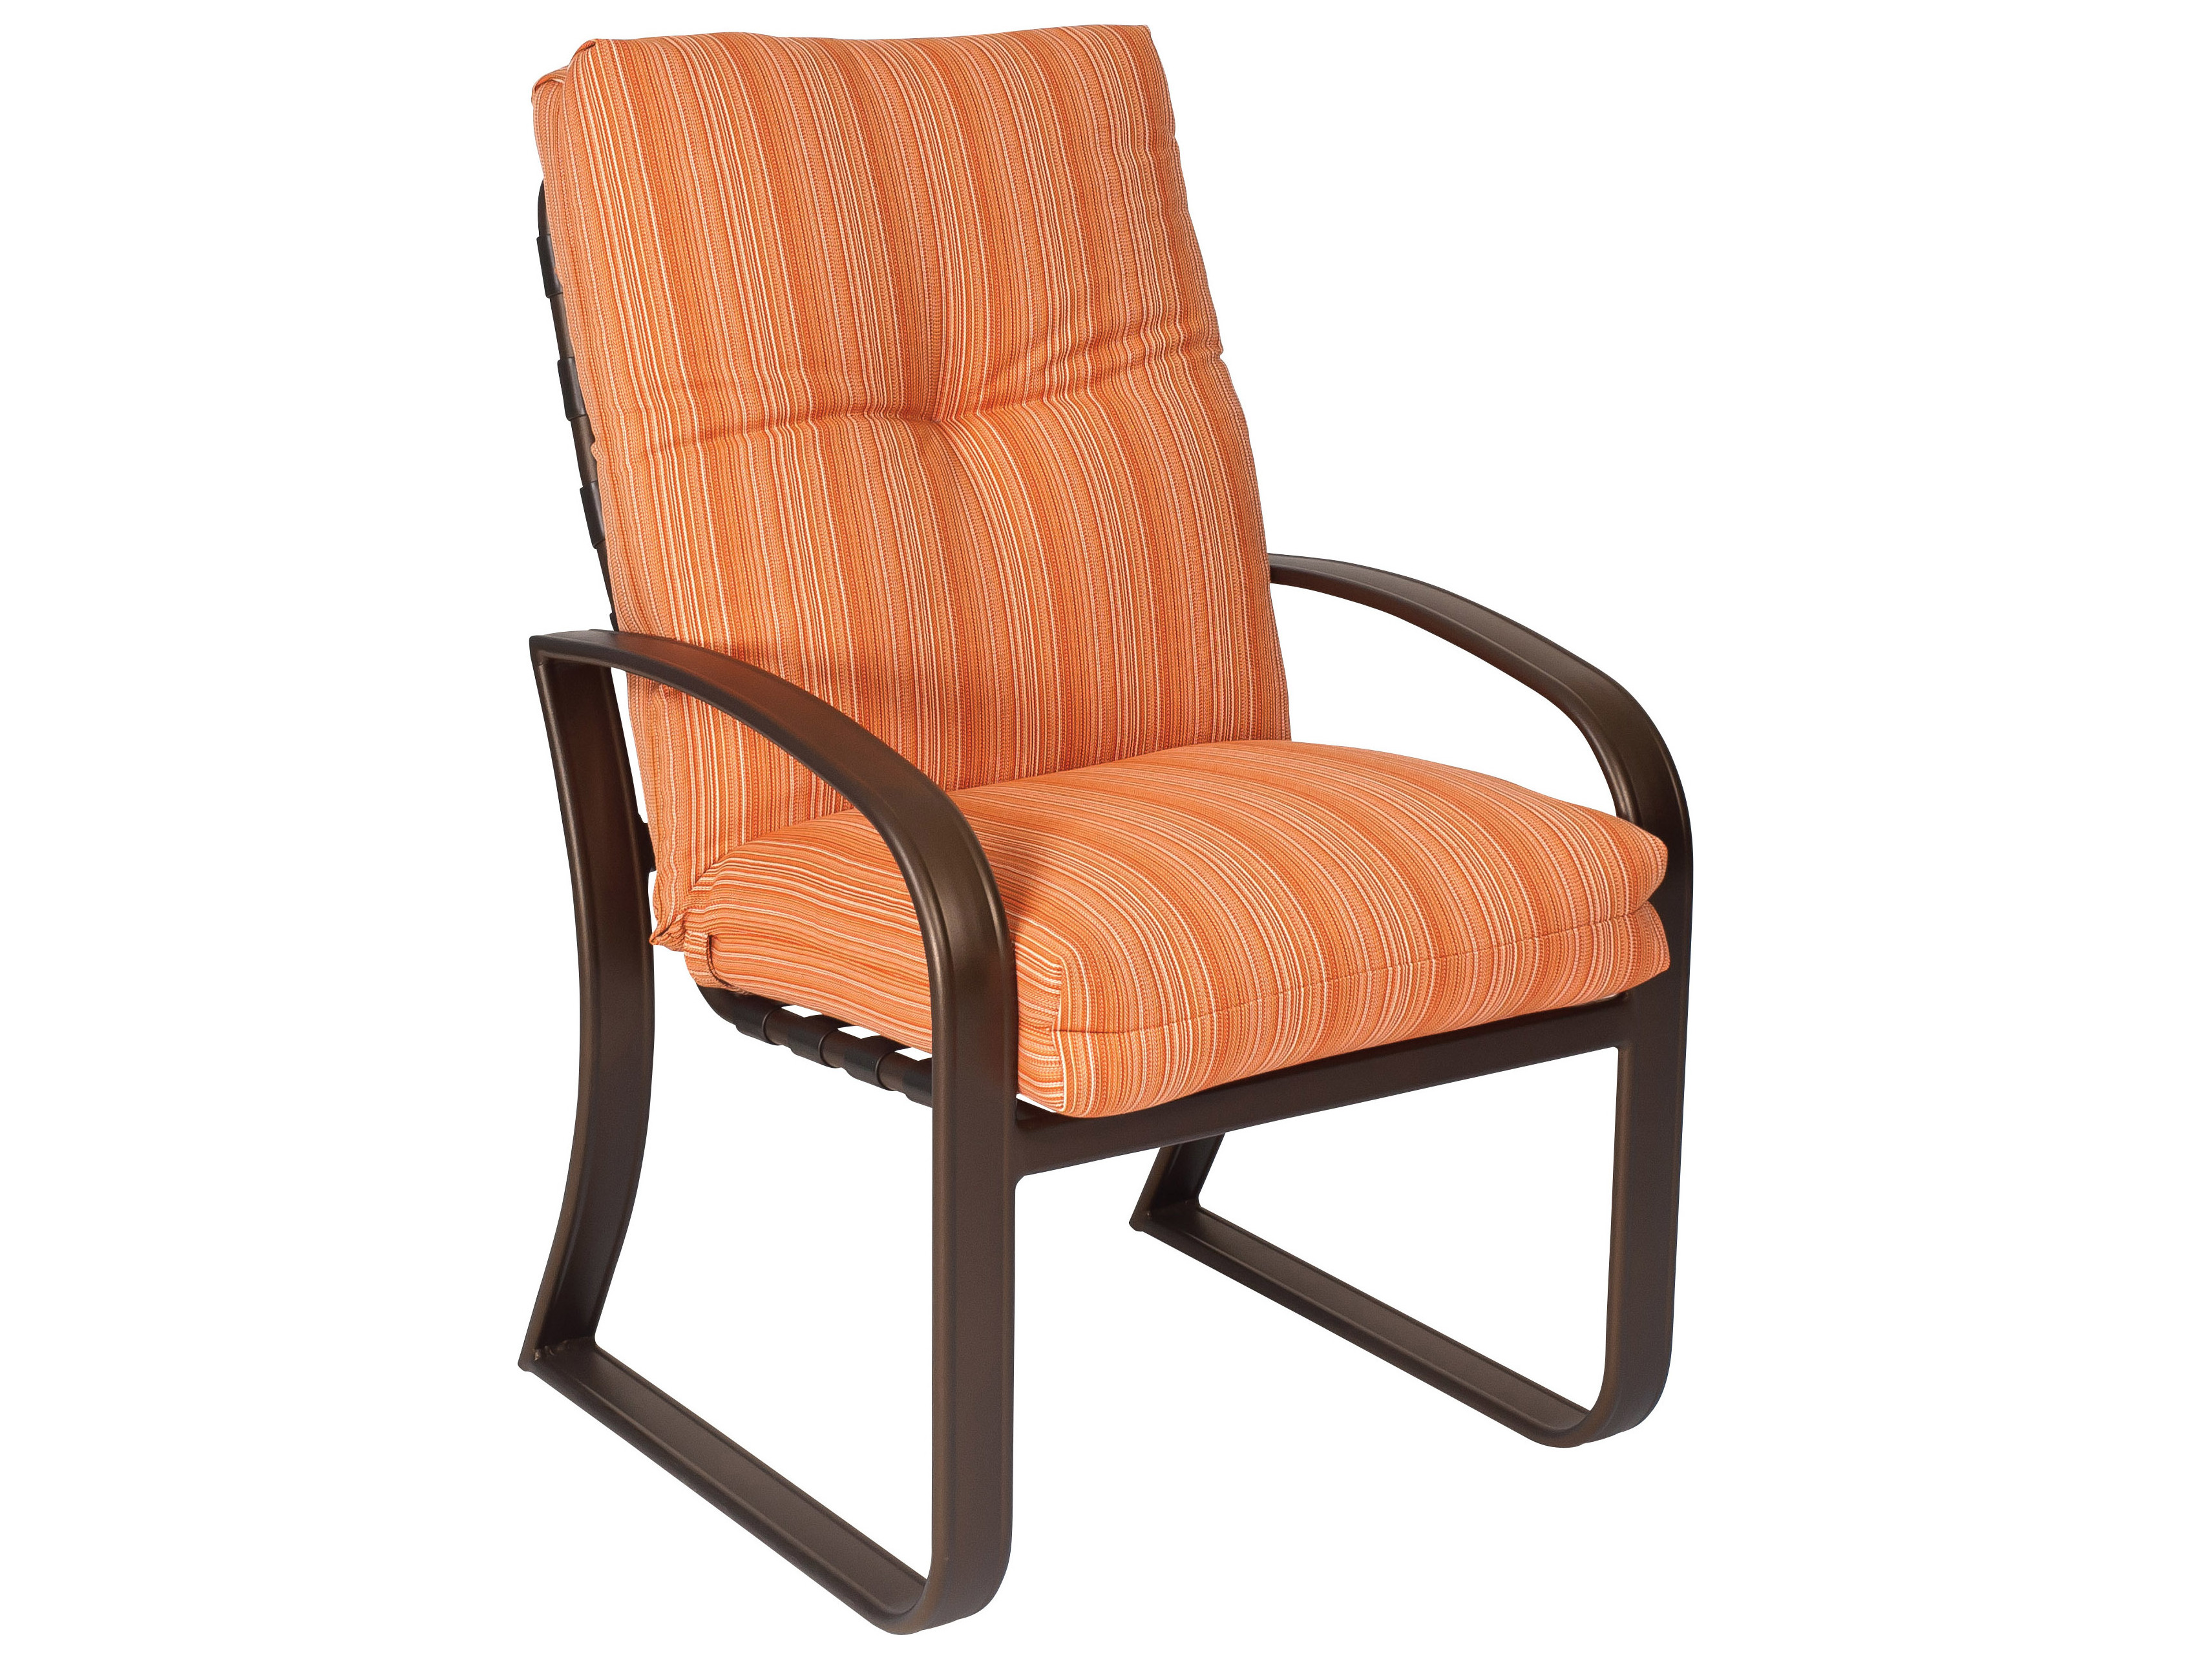 Woodard Cayman Isle Dining Chair Replacement Cushions